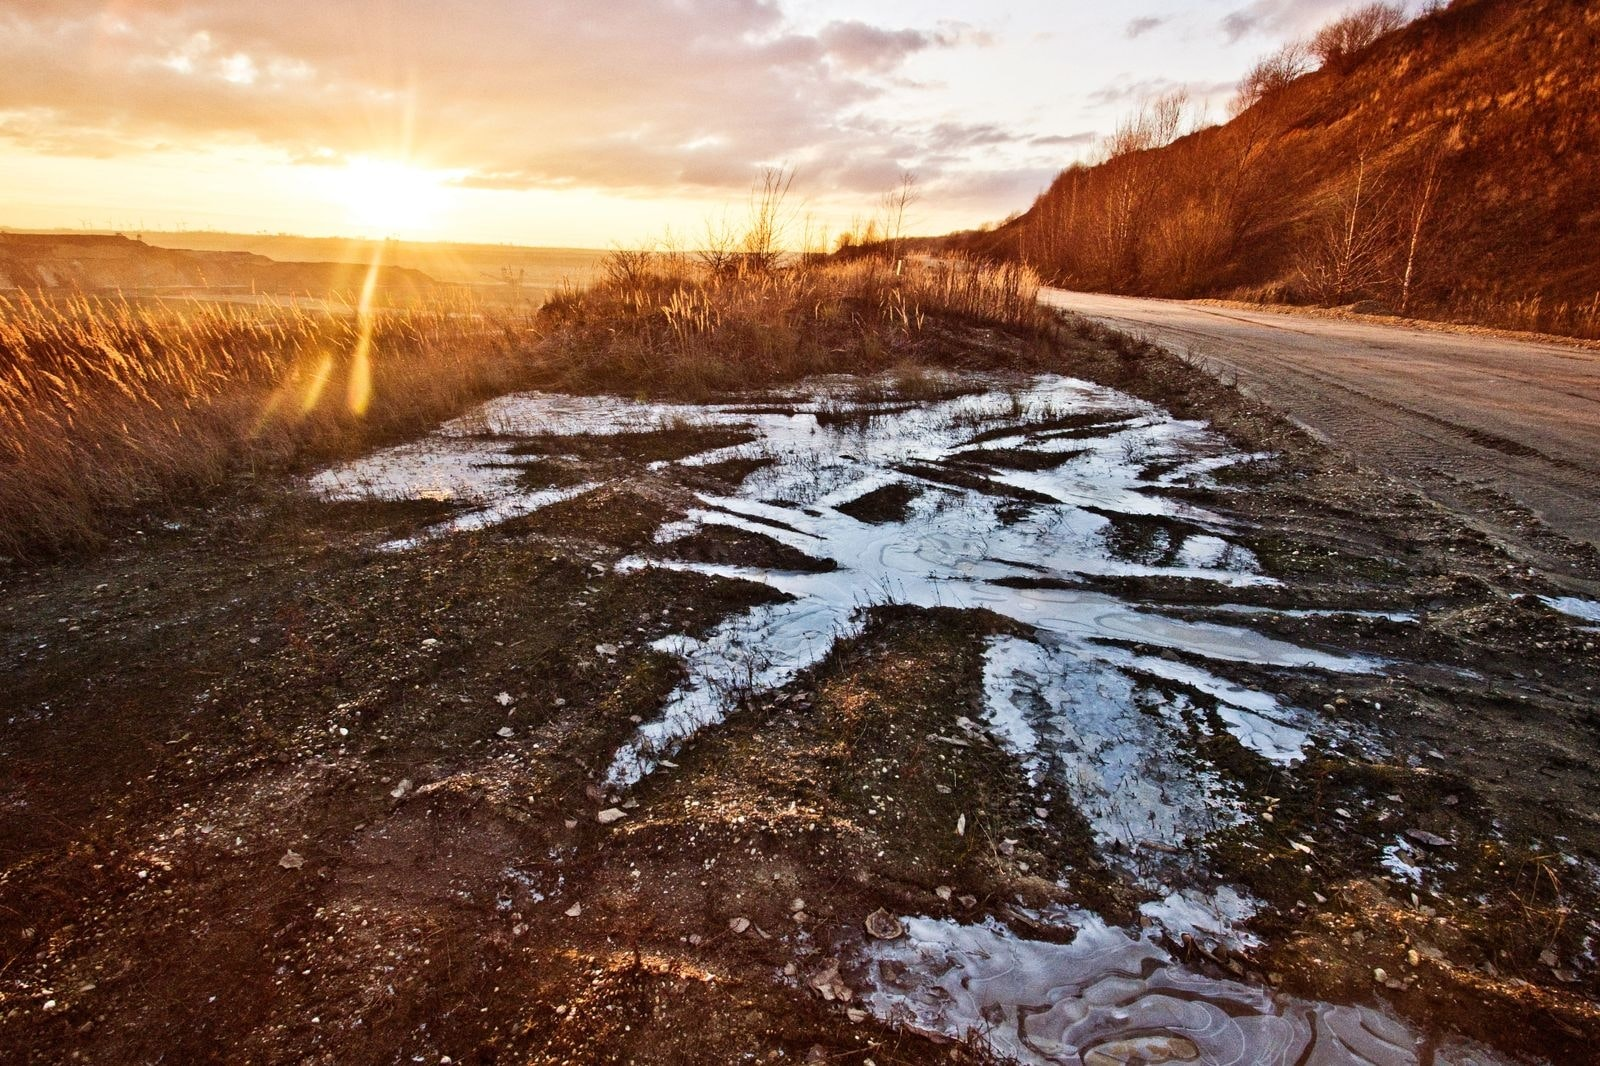 Muddy field along the side of the road during as the sun sets in the horizon